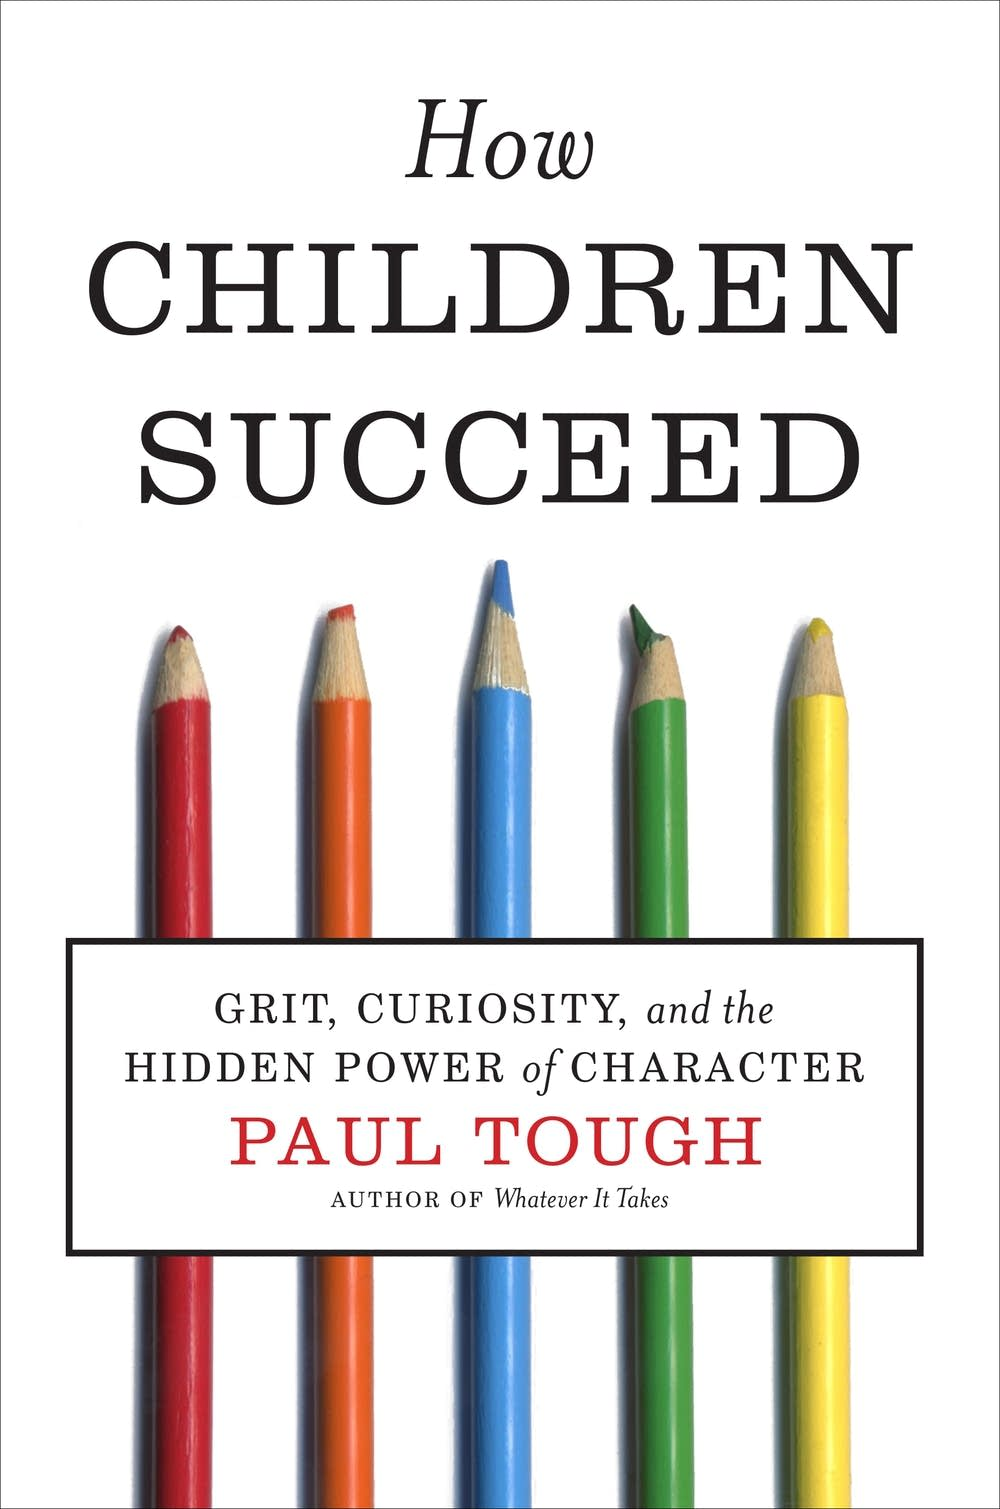 'How Children Succeed' by Paul Tough